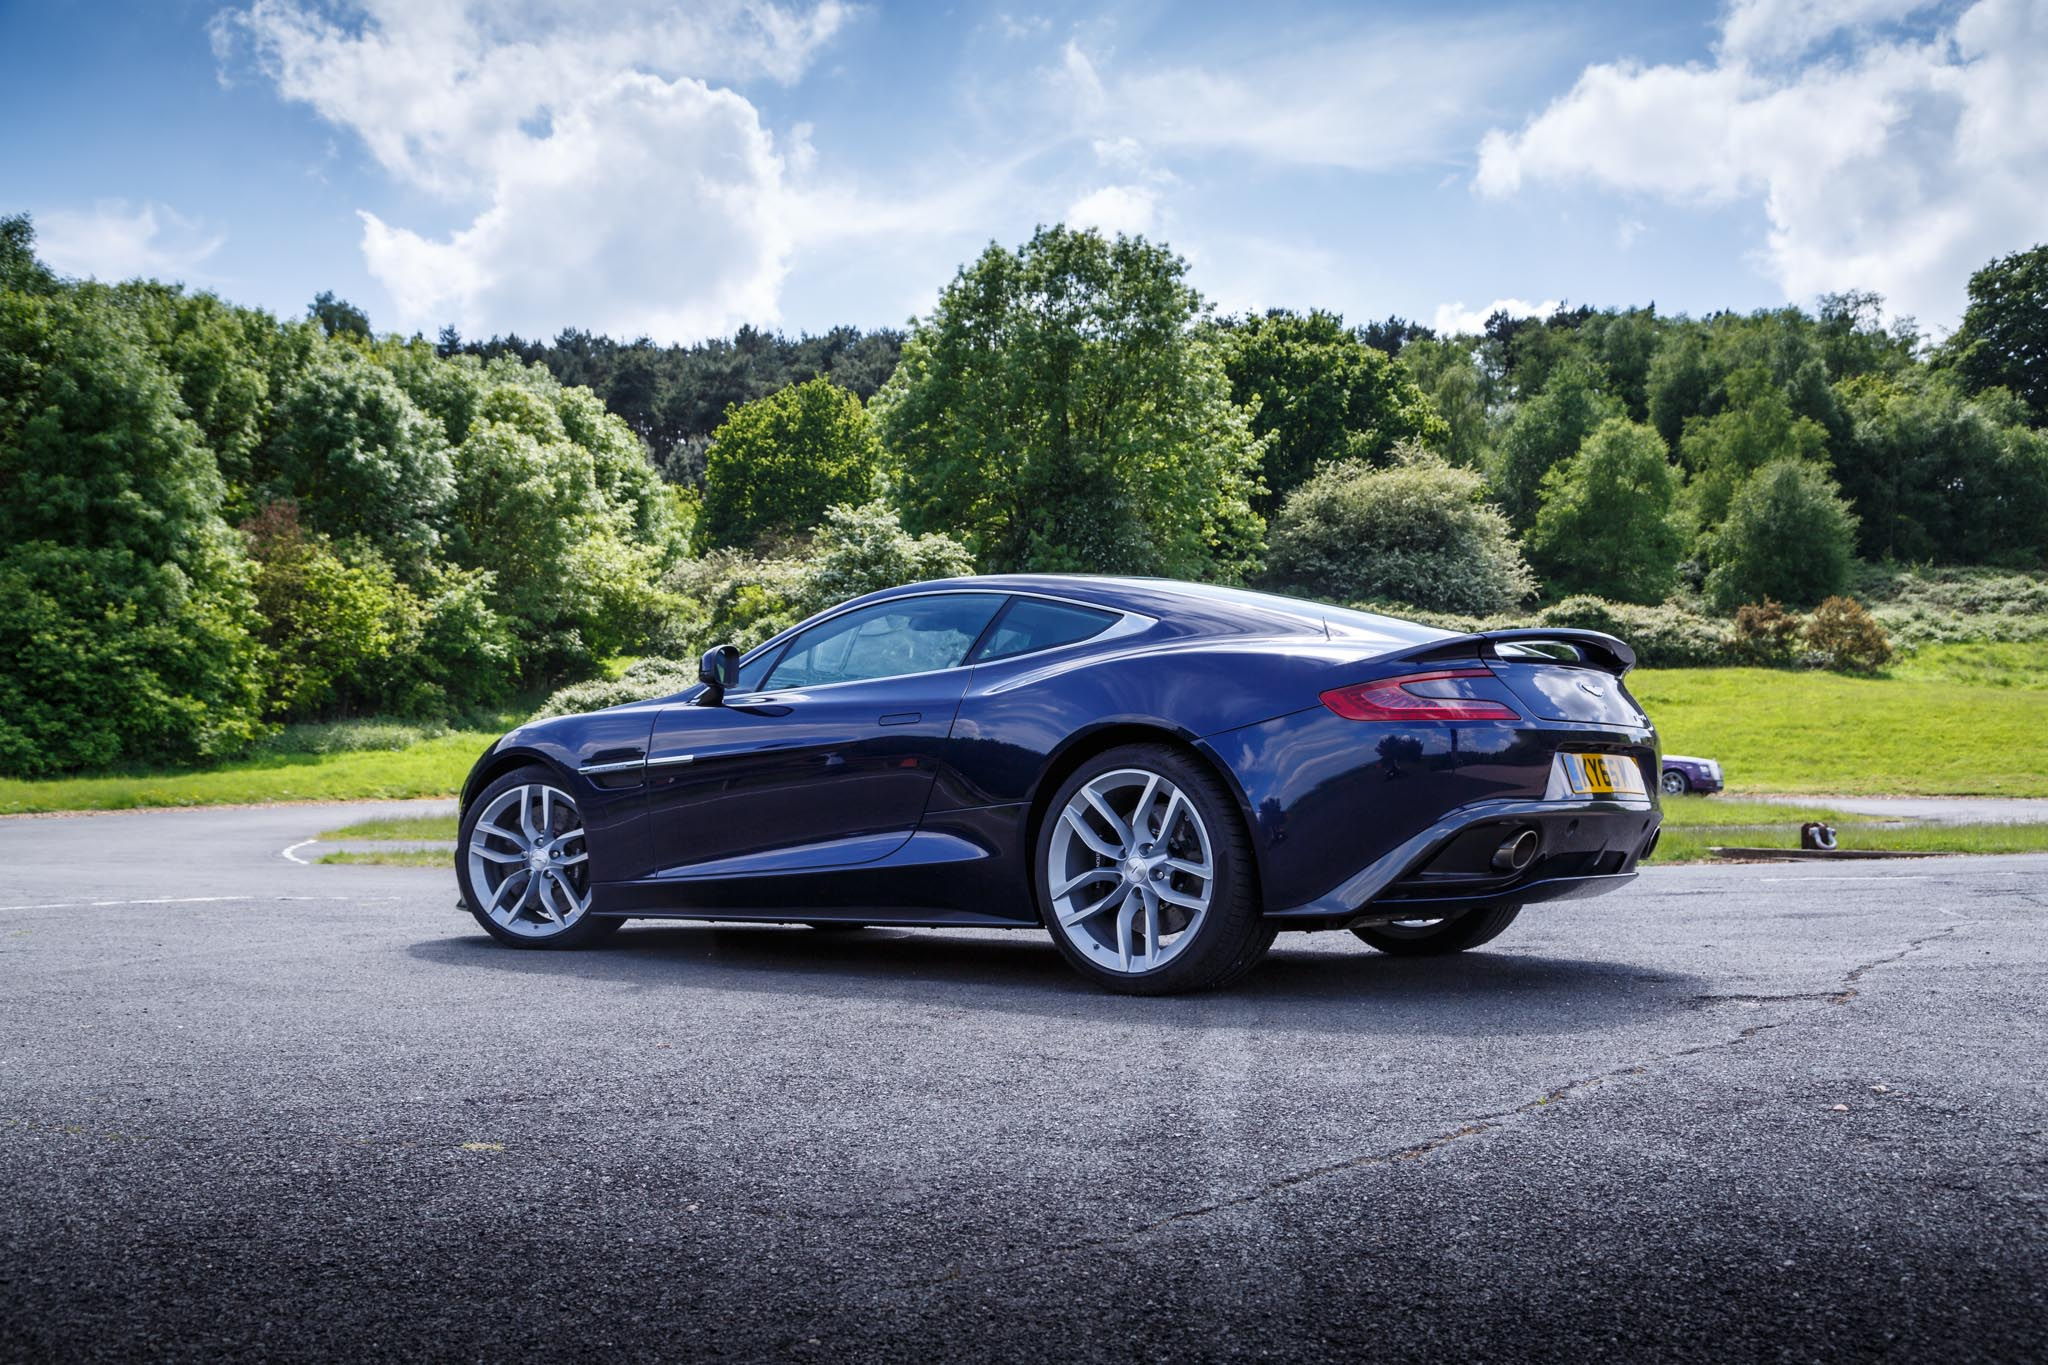 2016 aston martin vanquish review. Black Bedroom Furniture Sets. Home Design Ideas